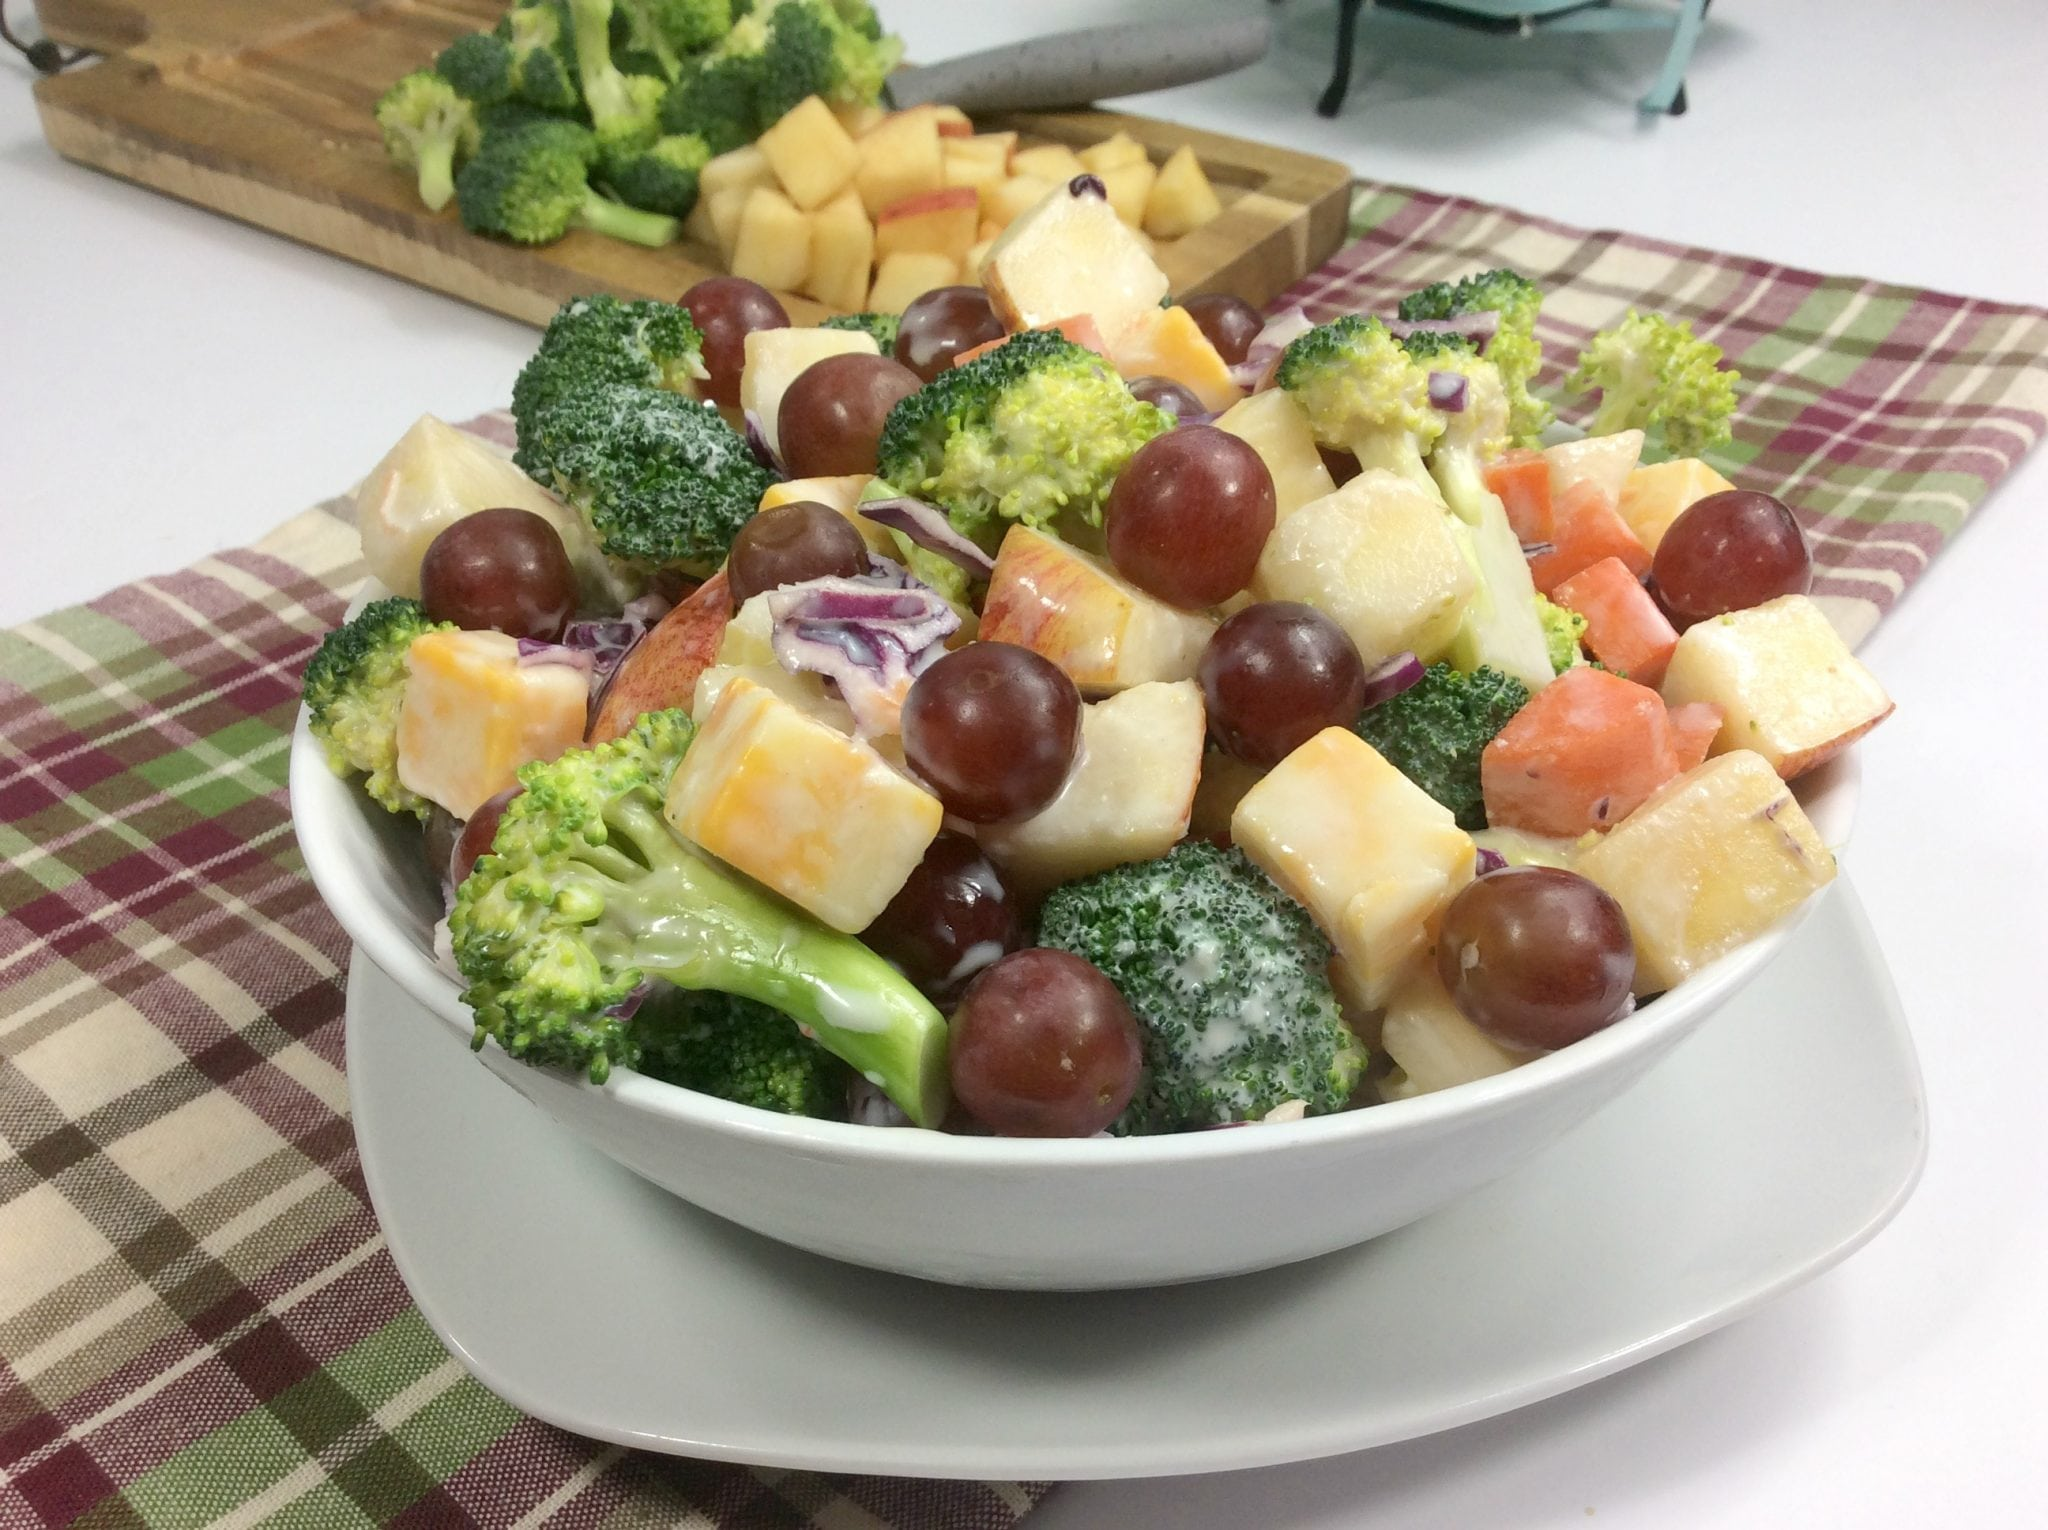 WW Apple Broccoli Salad